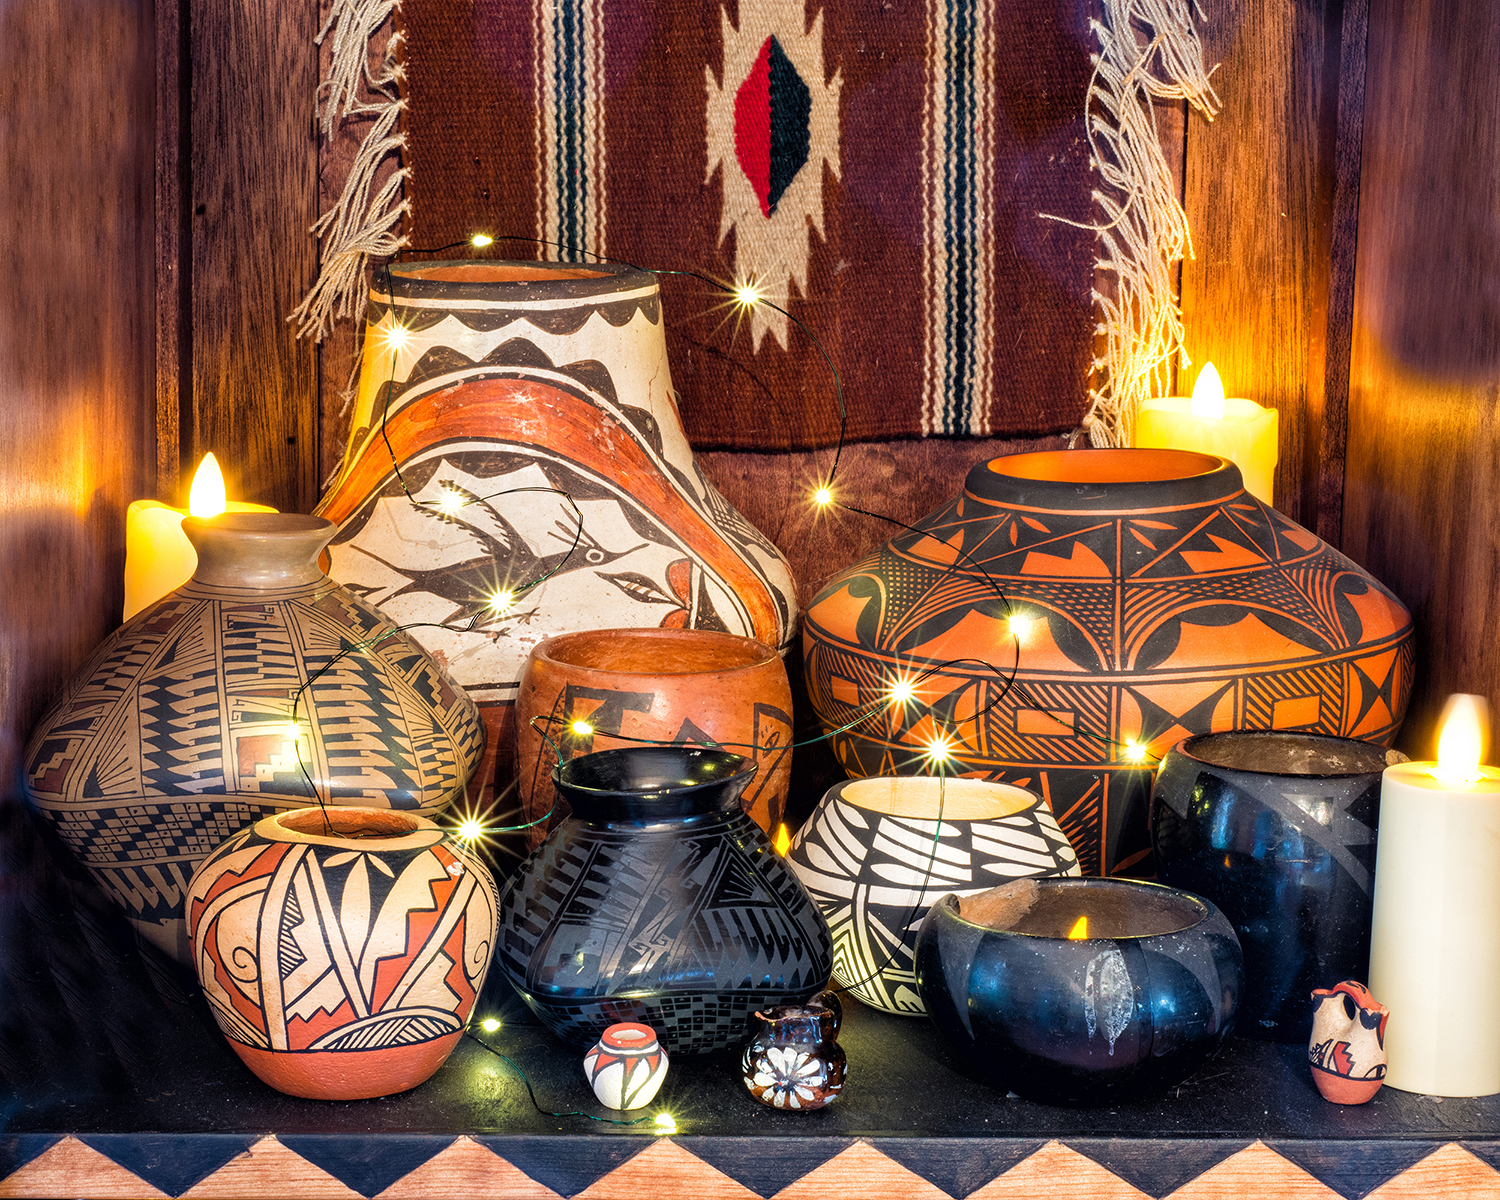 A collection of Native American pottery